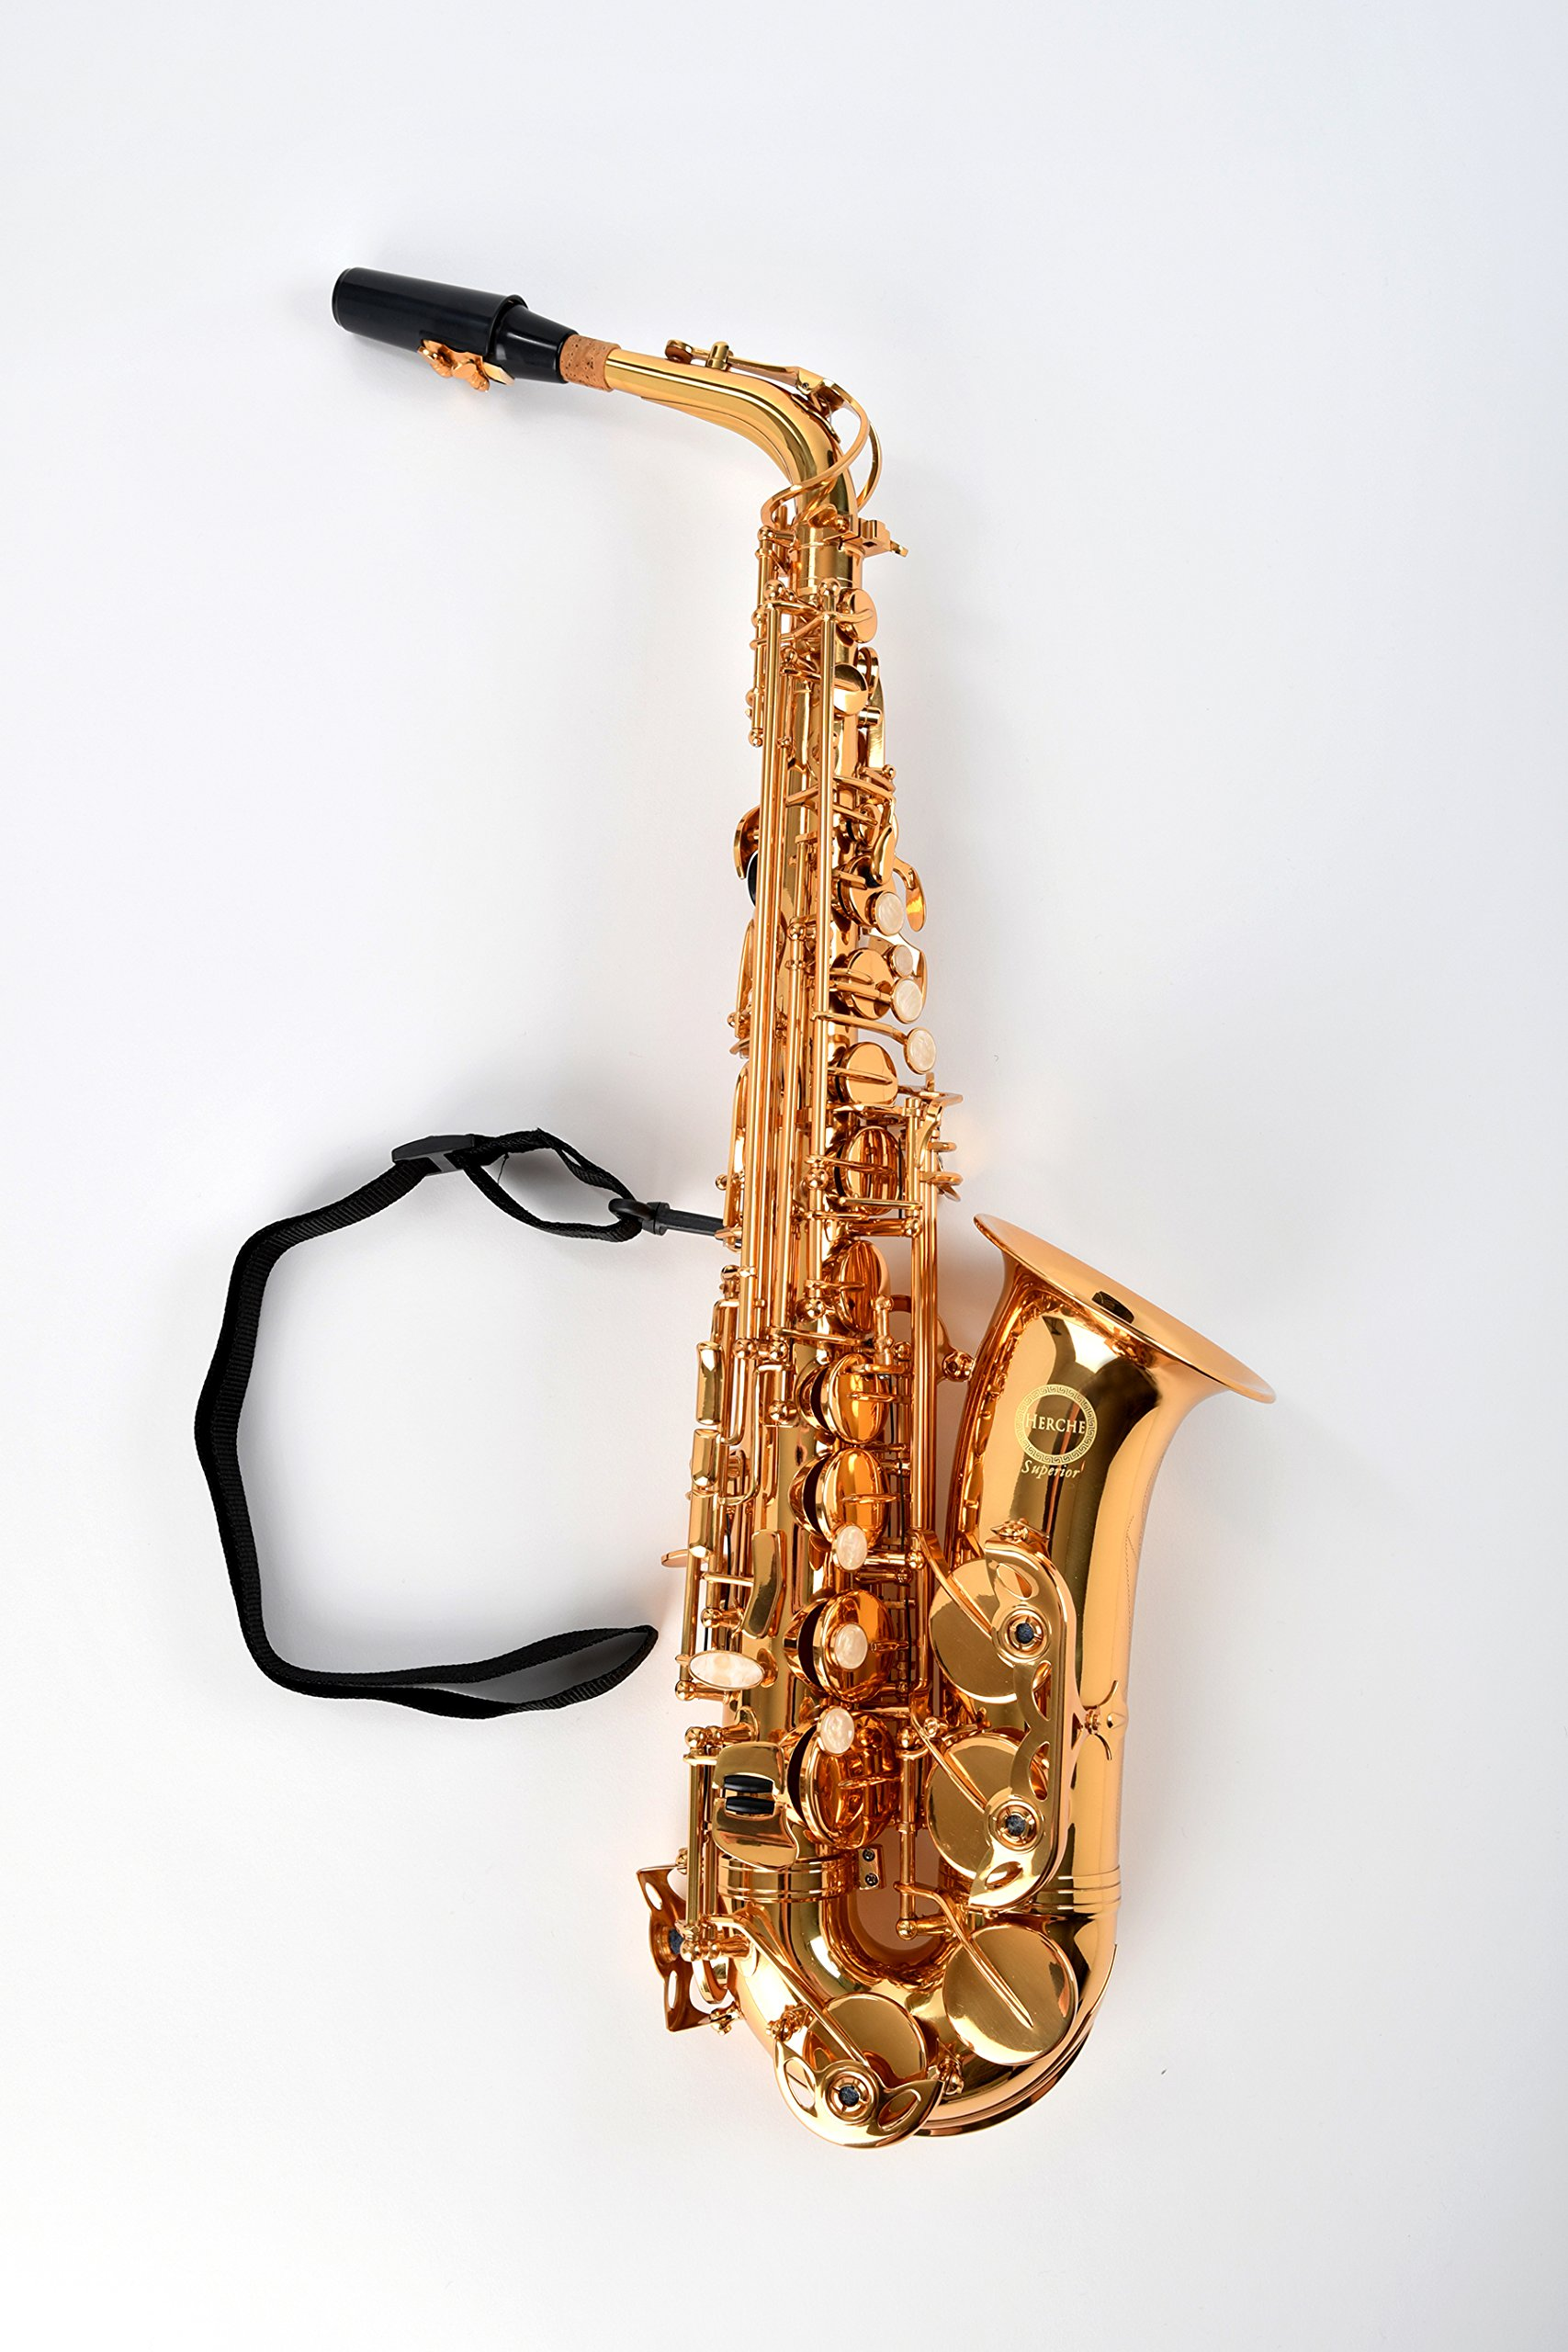 NEW! Herche Superior Alto Saxophone AS-630 Best for Students - Durable forged keys -Plush lined Saxophone BackPack Case - Leather Pads - Cork Grease - Saxophone Neck Strap - #2 Rico Saxophone Reeds